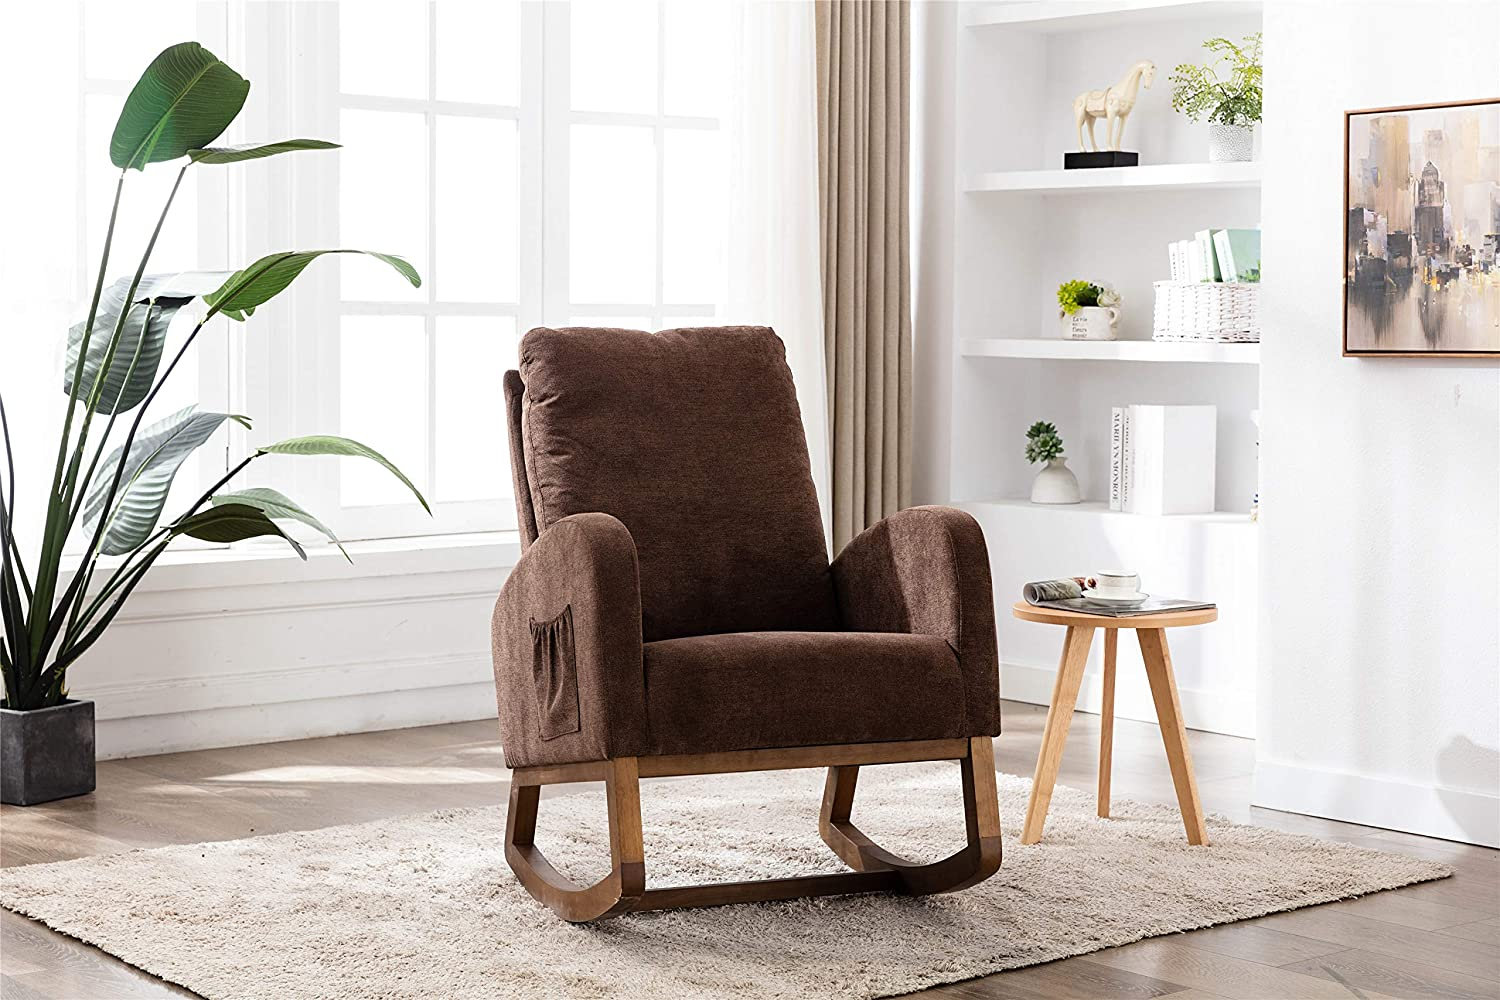 UNISOPH Comfortable Relax Rocking Chair Al sold out. Minneapolis Mall Lounge Chai